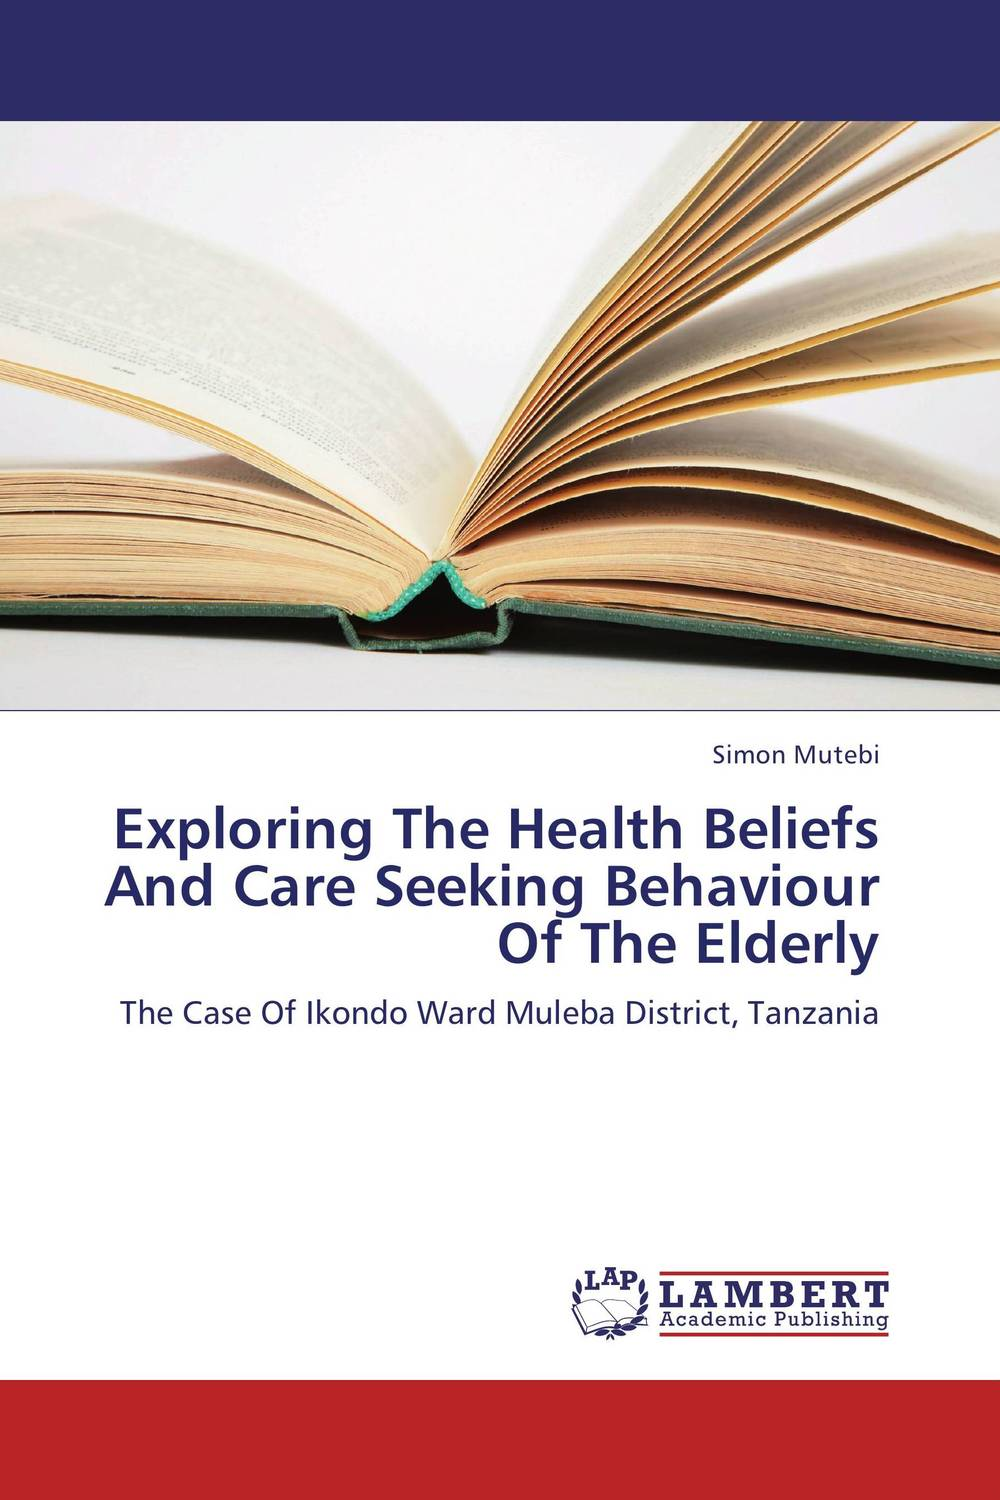 Exploring The Health Beliefs And Care Seeking Behaviour Of The Elderly